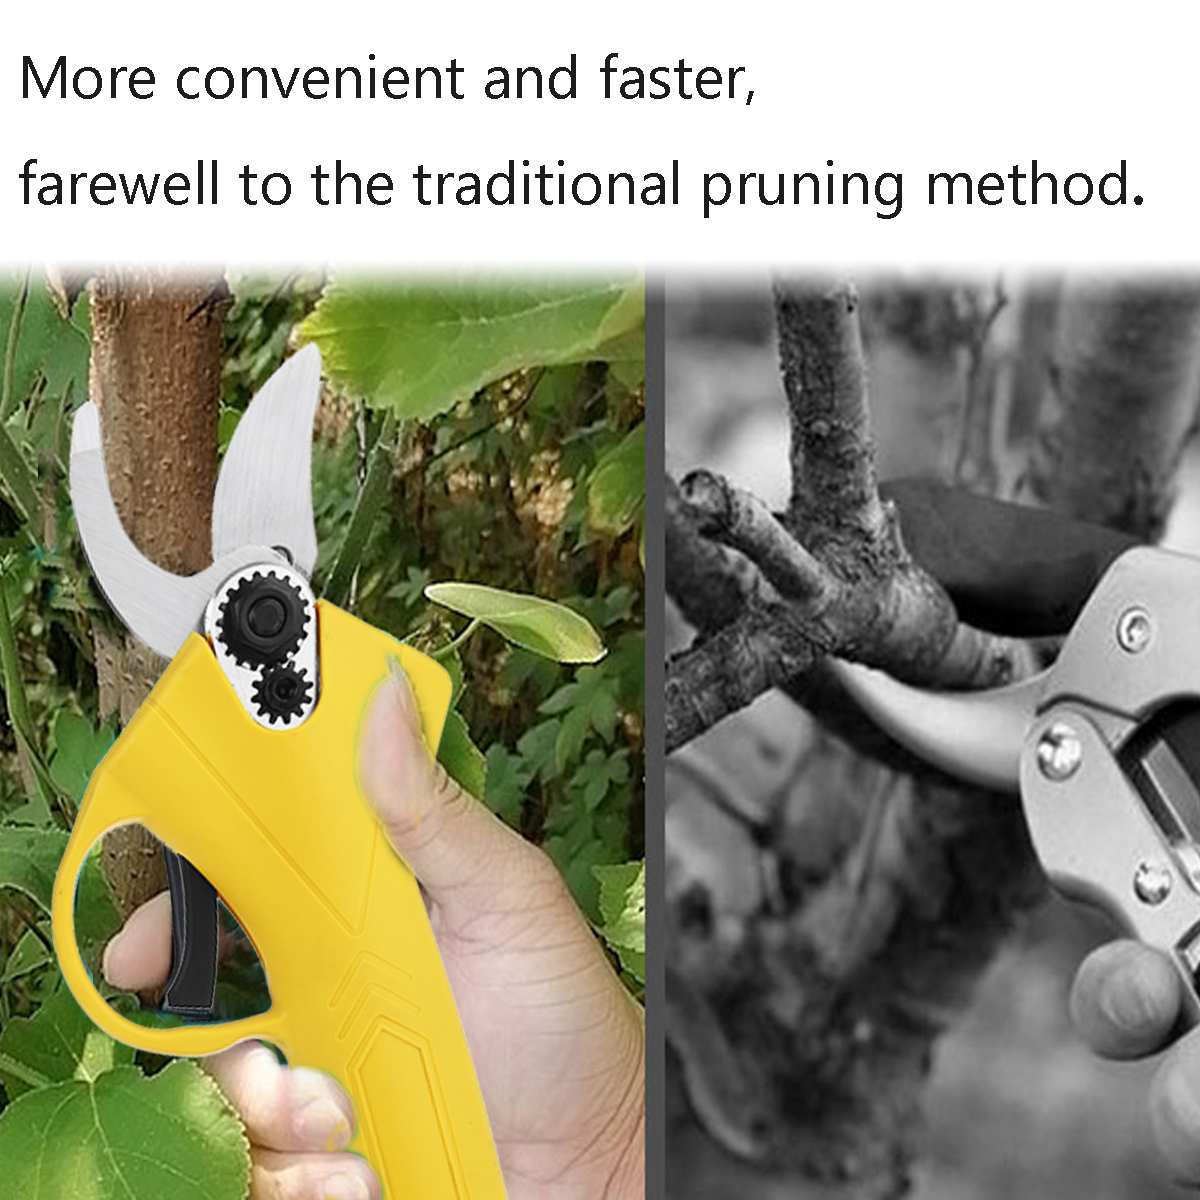 Tools : NEW 88V Cordless Pruner Lithium-ion Pruning Shear Efficient Fruit Tree Bonsai Pruning Electric Tree Branches Cutter Landscaping